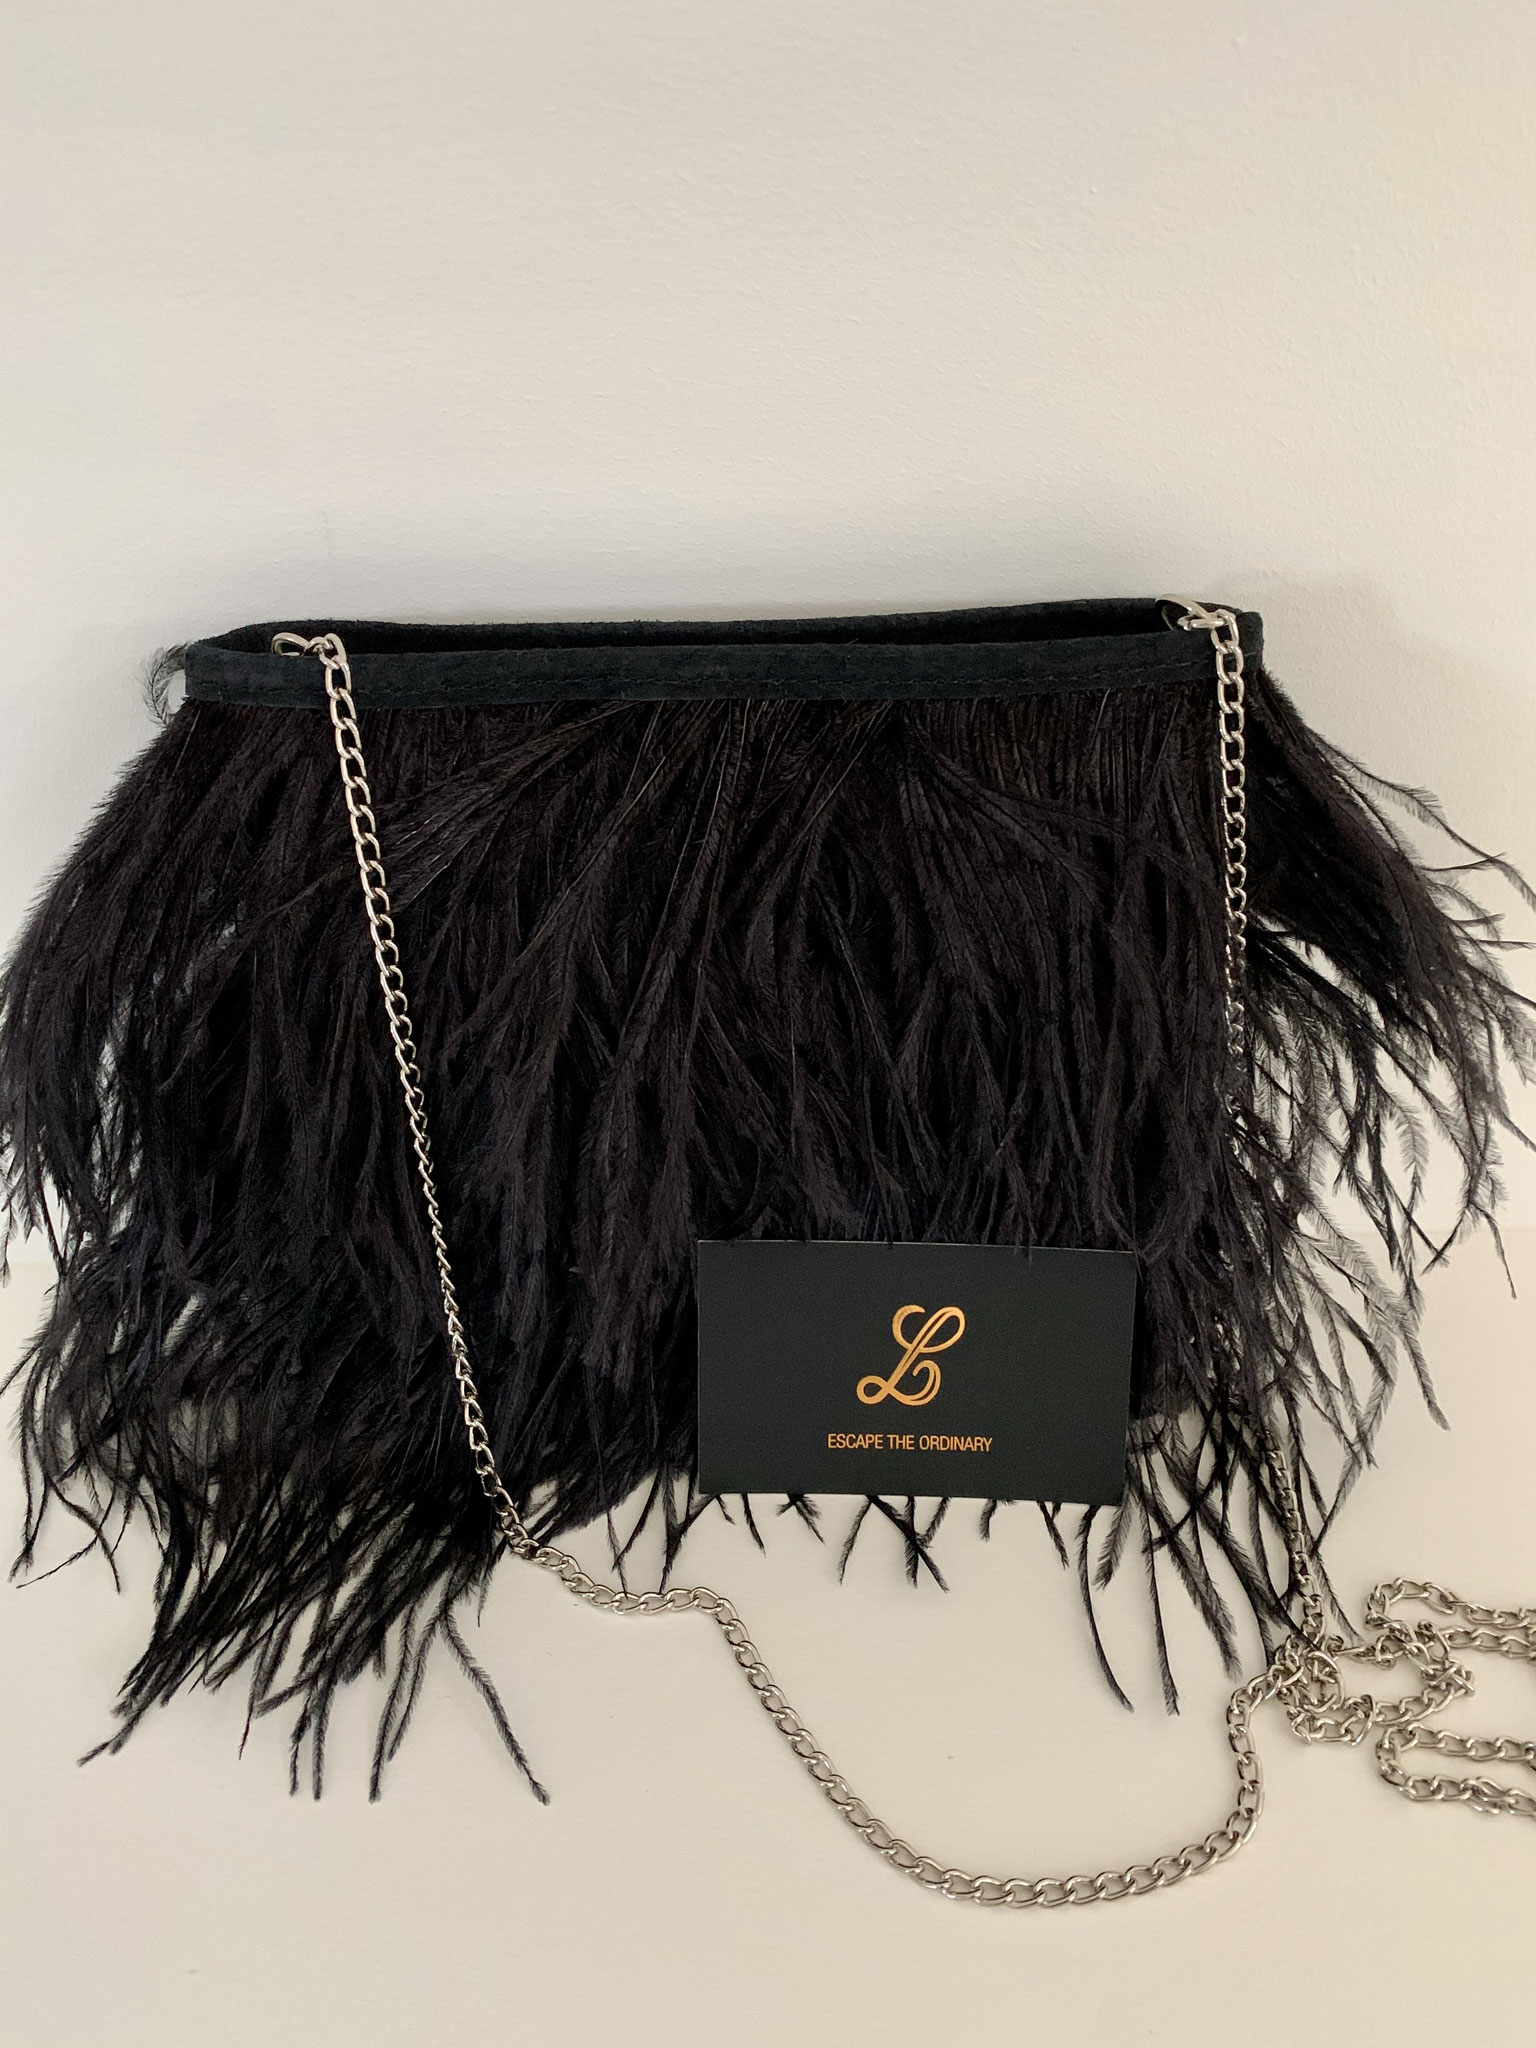 Ostrich feather bag met daim - 125€